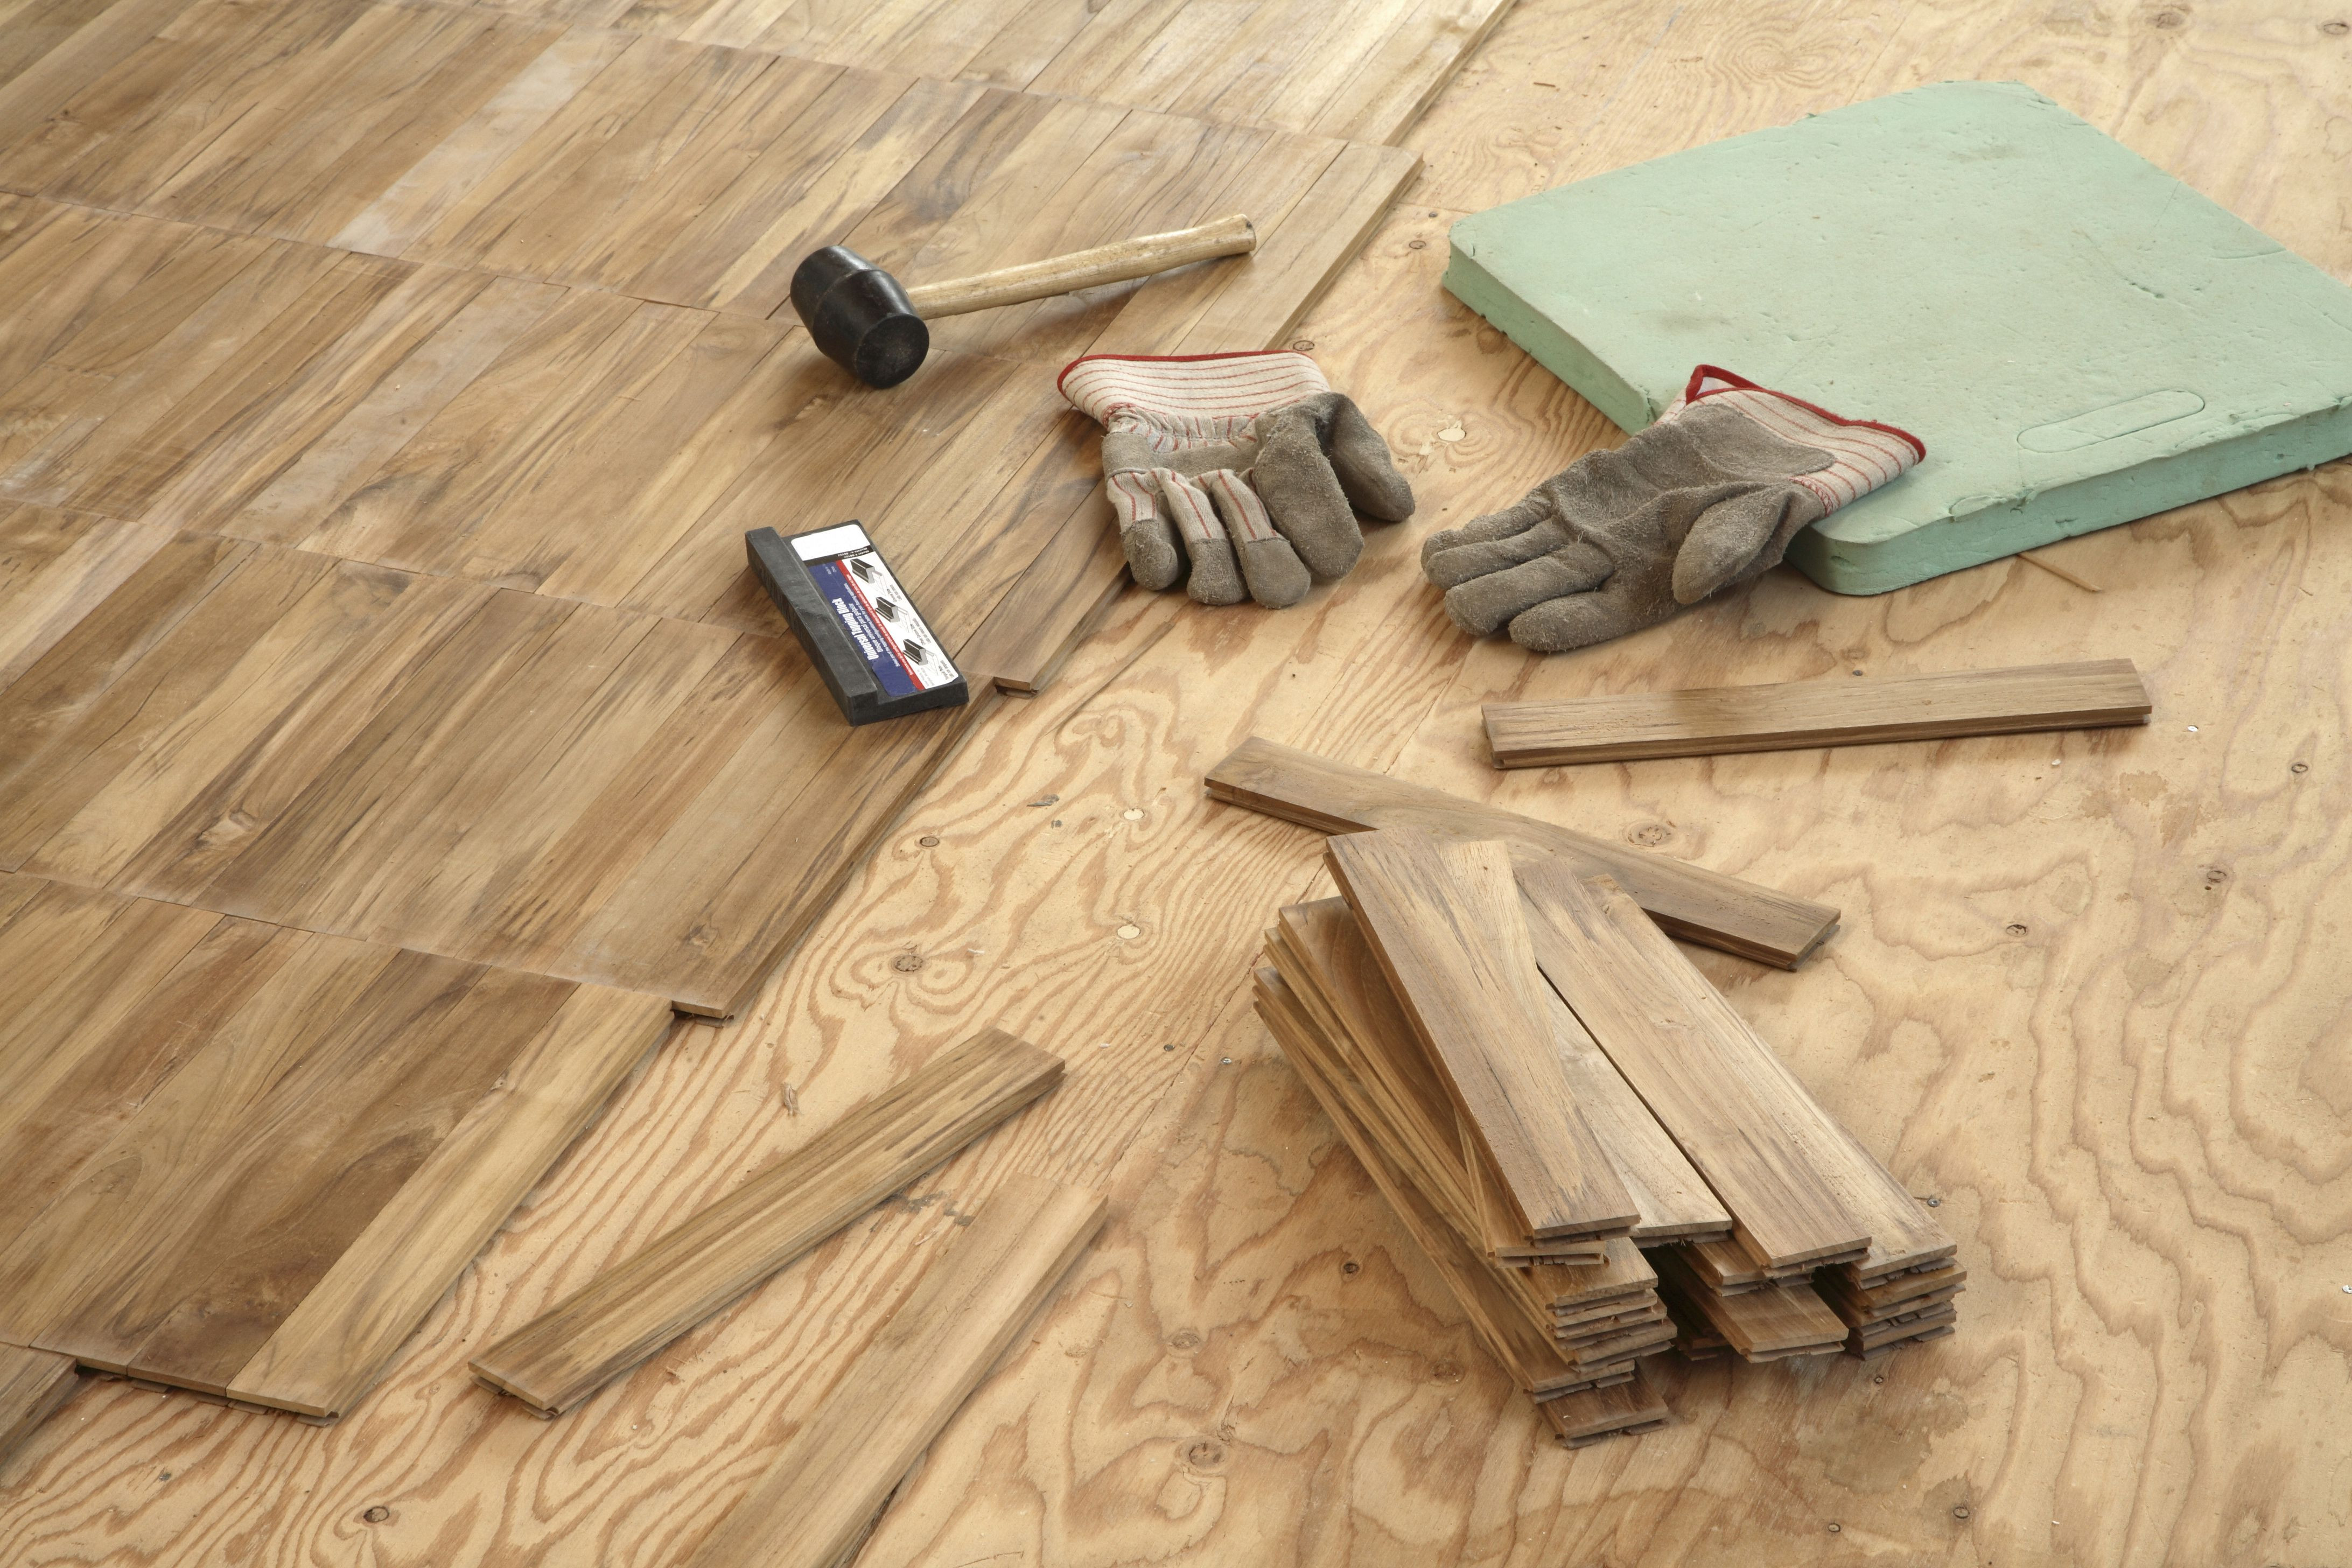 home depot hardwood floor sealer of plywood underlayment pros and cons types and brands intended for plywoodunderlaymentunderwoodflooring 5ac24fbcae9ab8003781af25